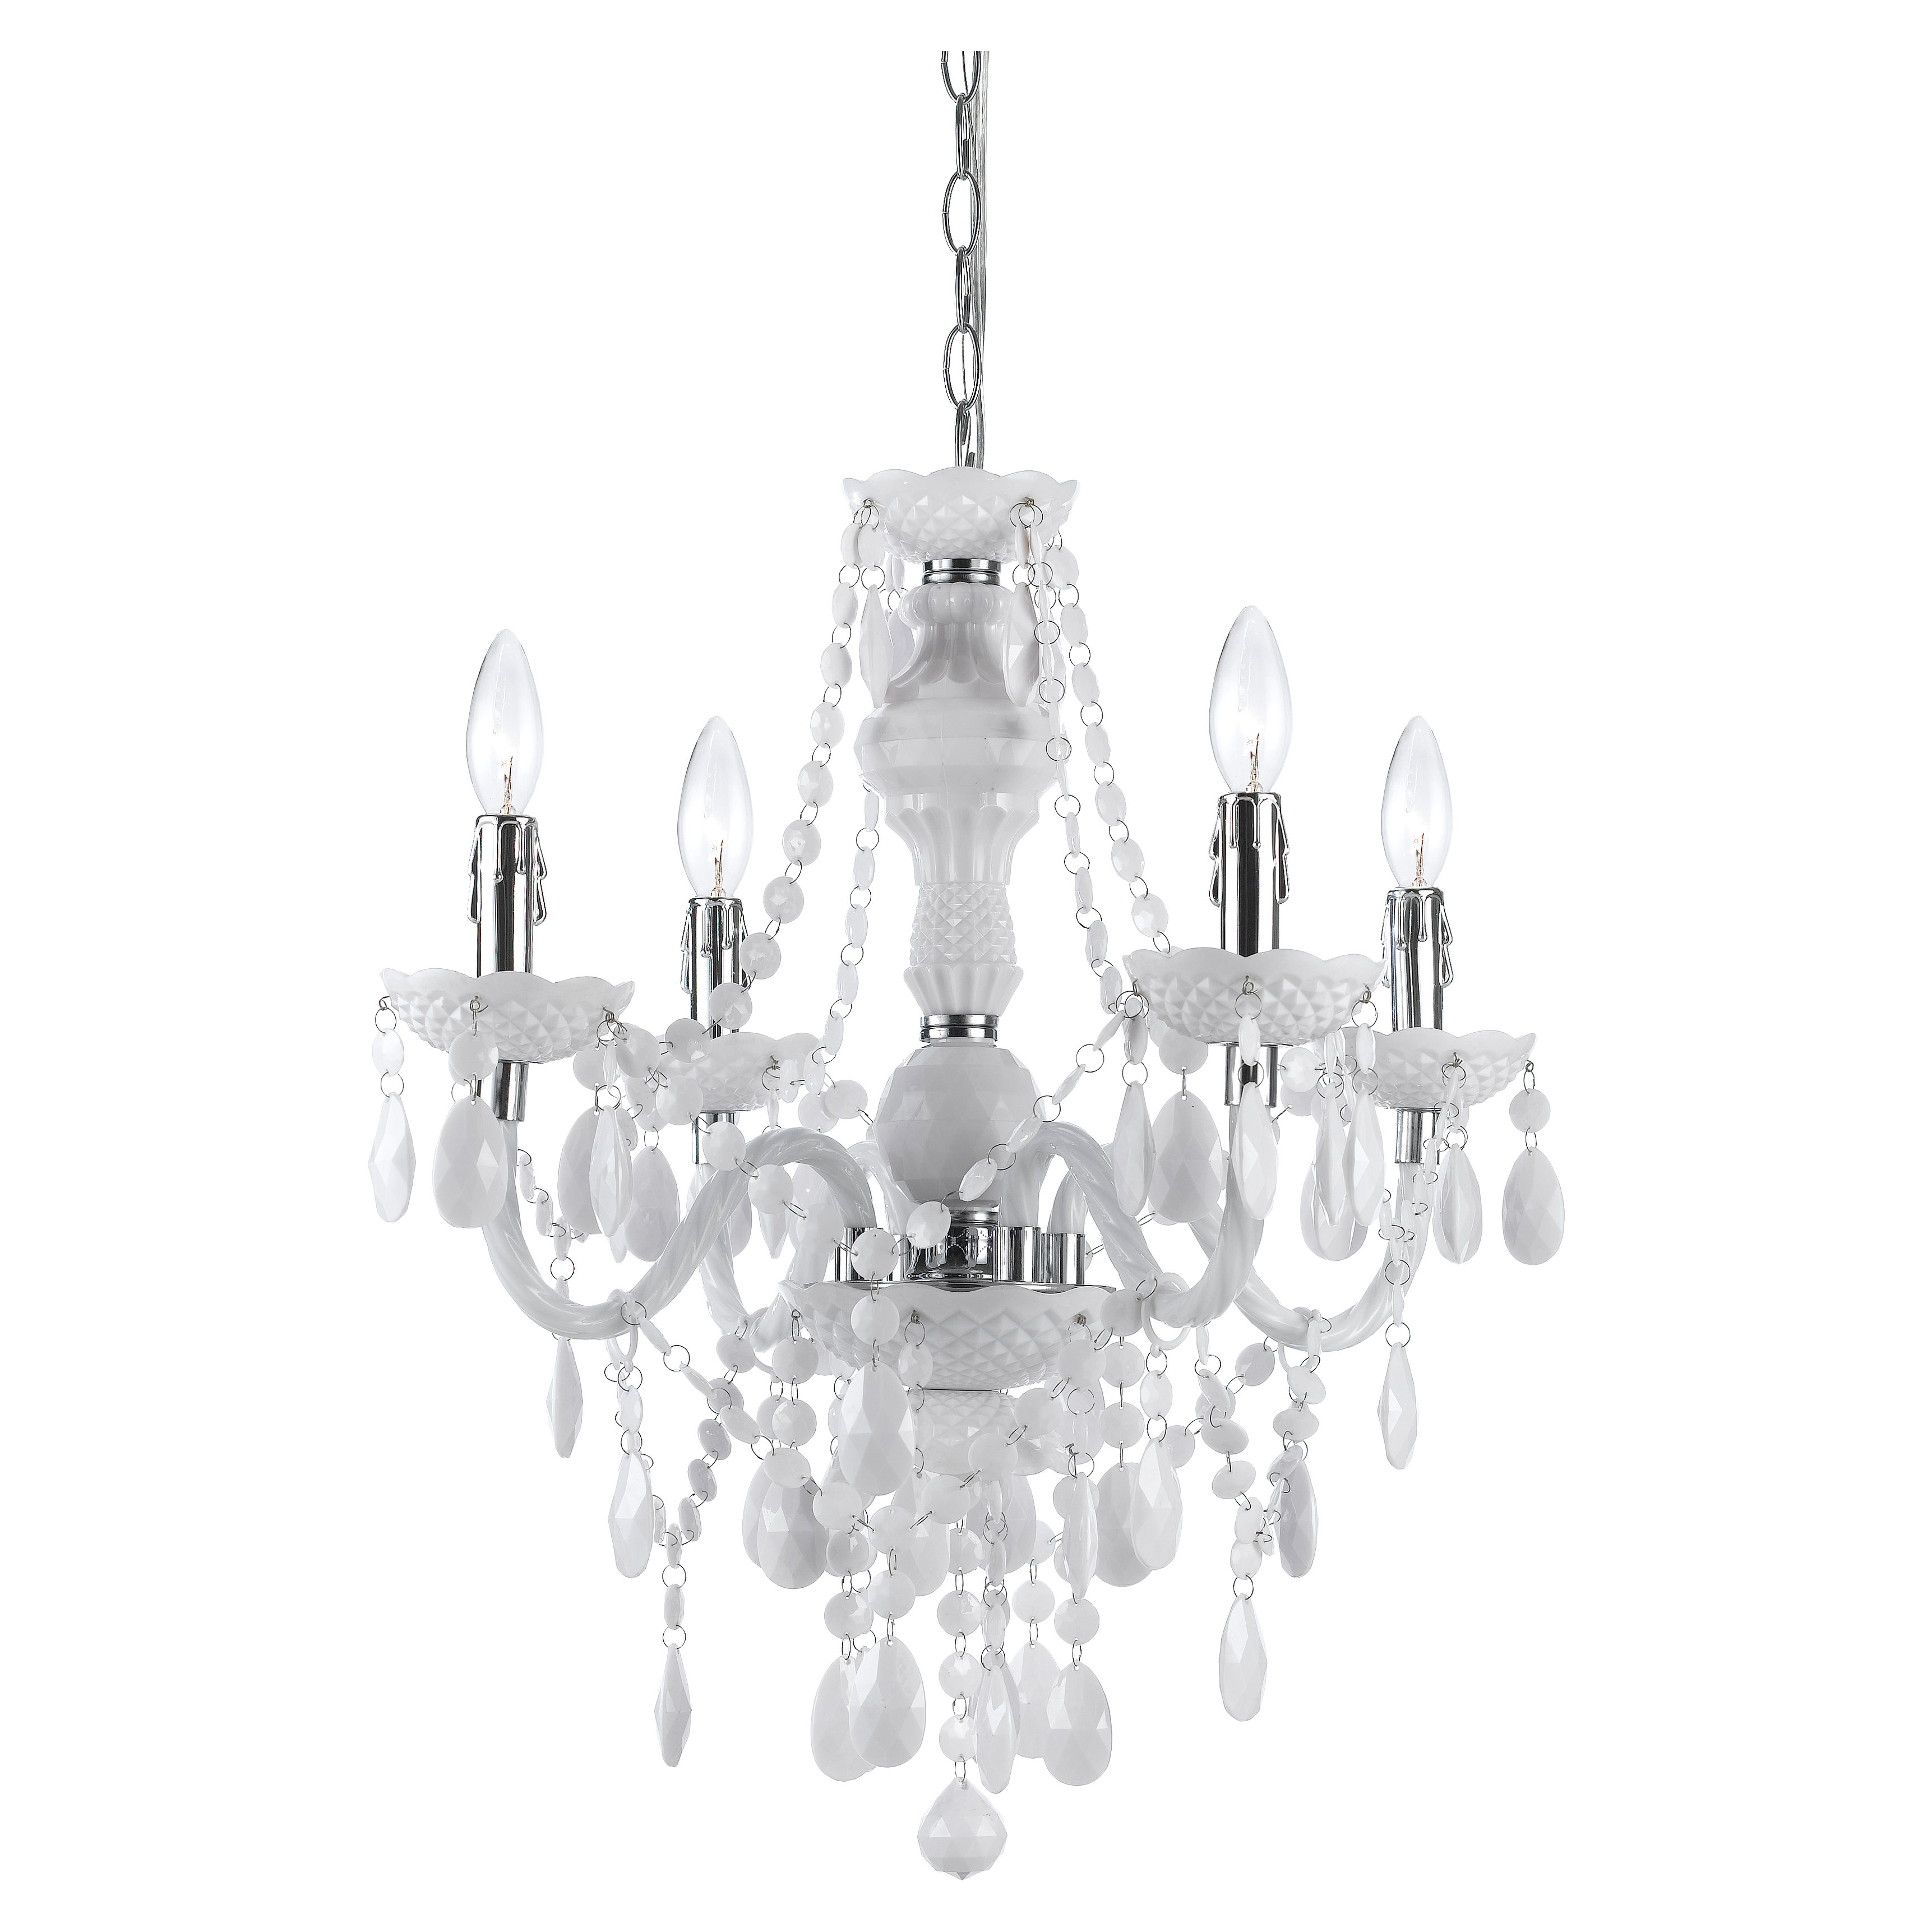 Aldora 4 Light Candle Style Chandeliers In Most Current Geoffroy 4 Light Candle Style Chandelier (View 5 of 25)